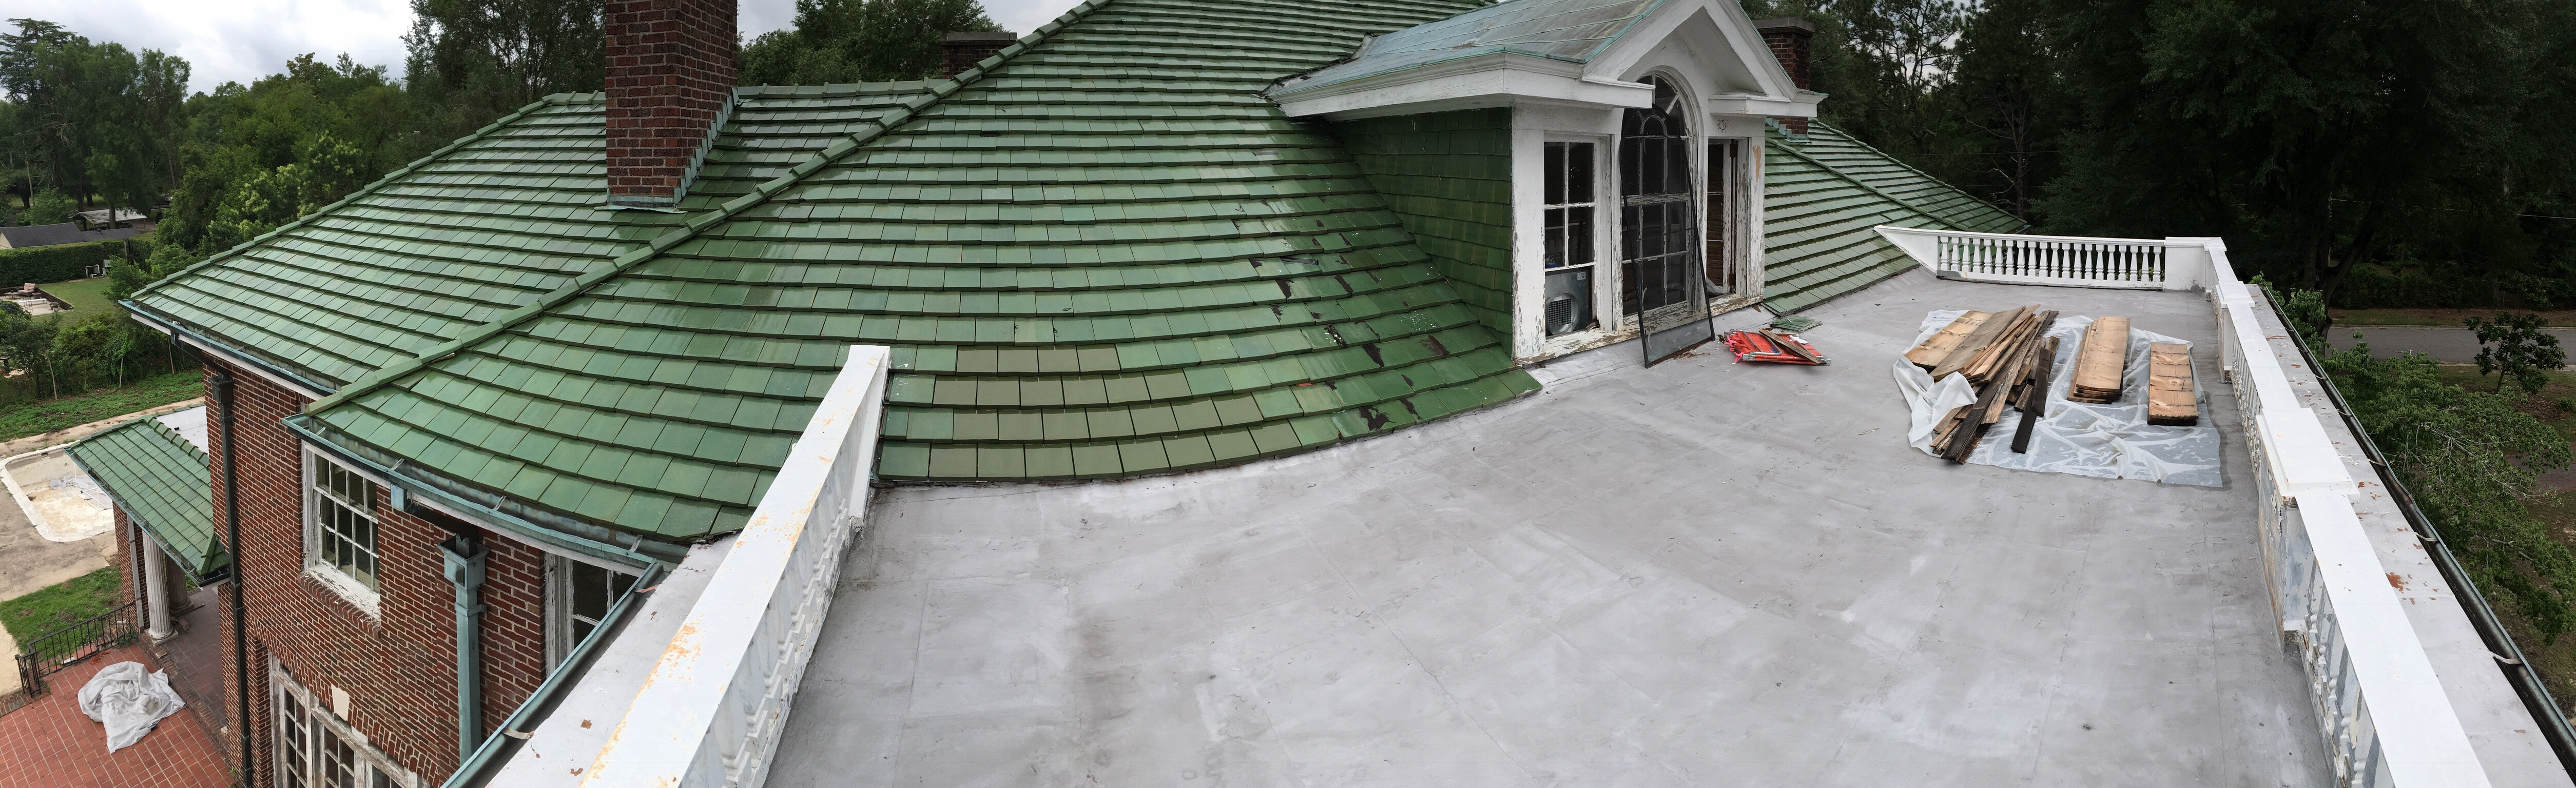 the original green roof the house on